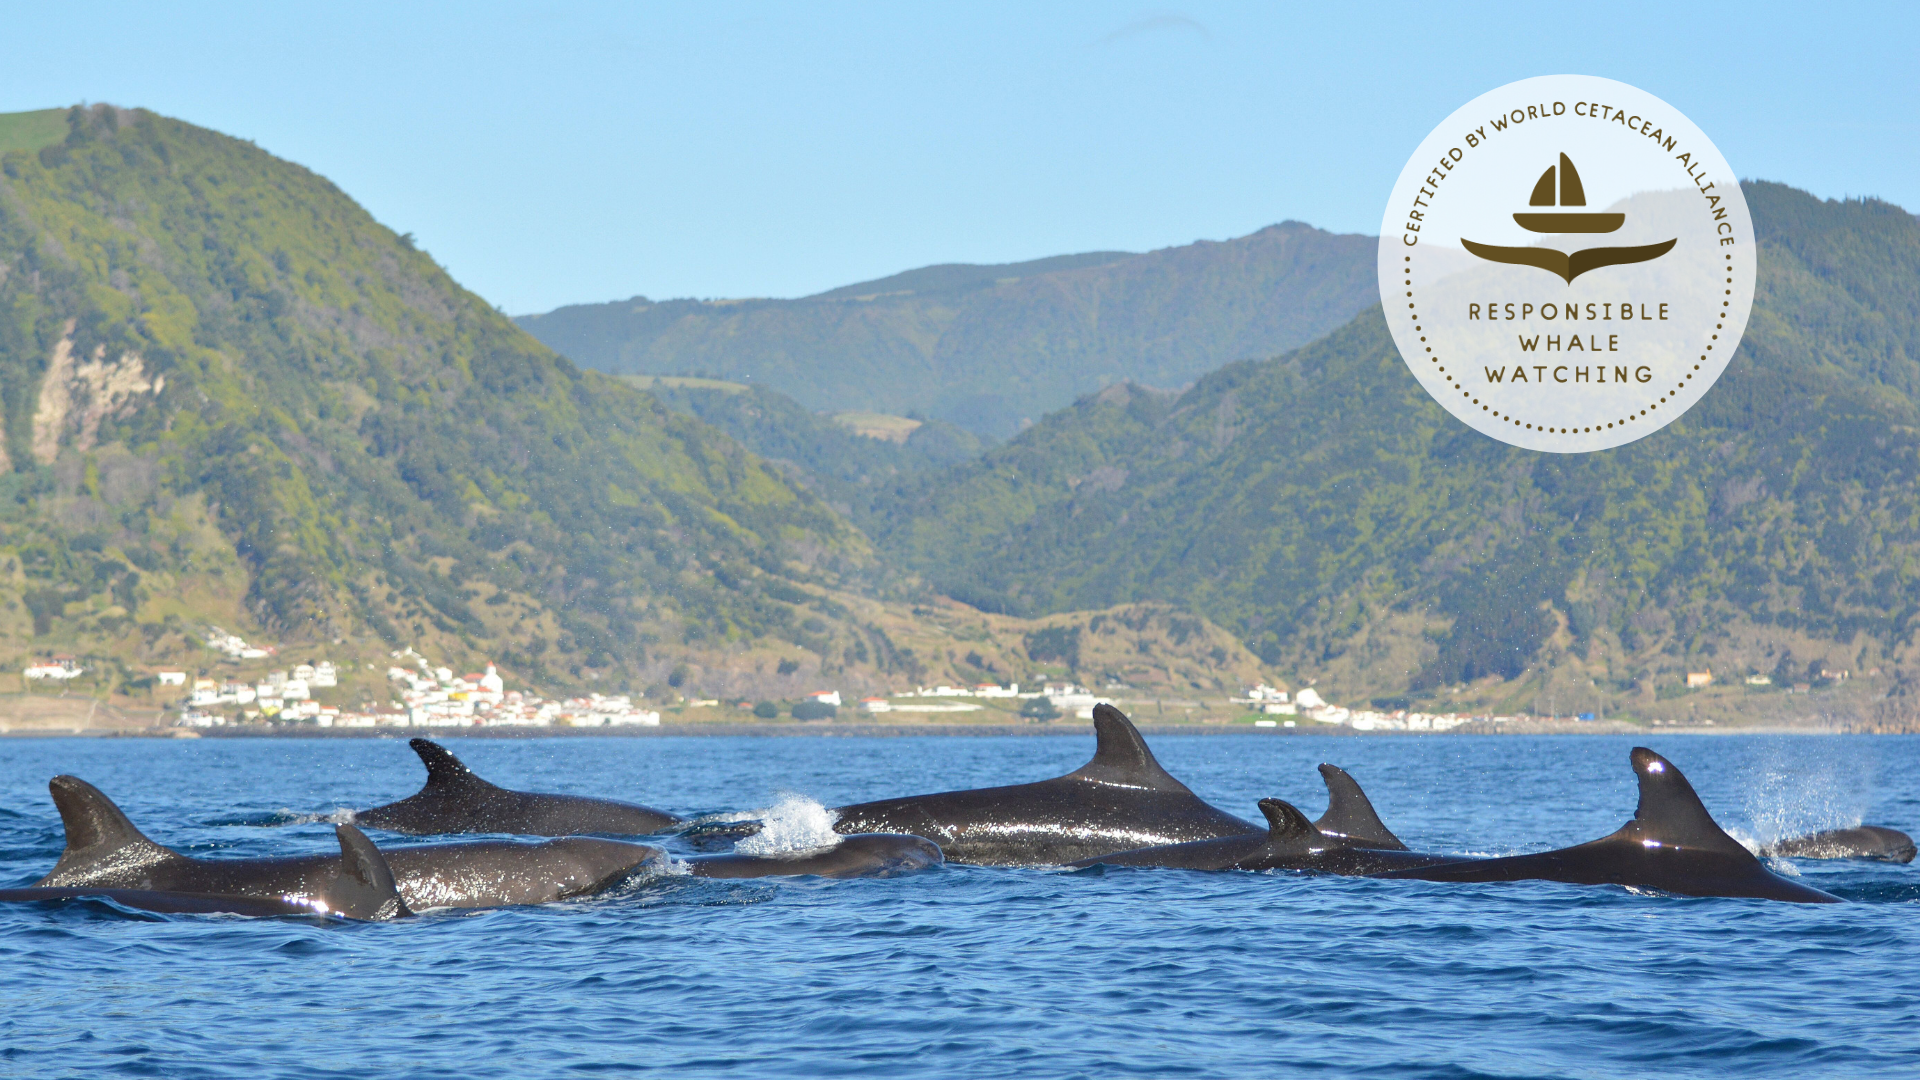 Watching Cetaceans? Get Certification!